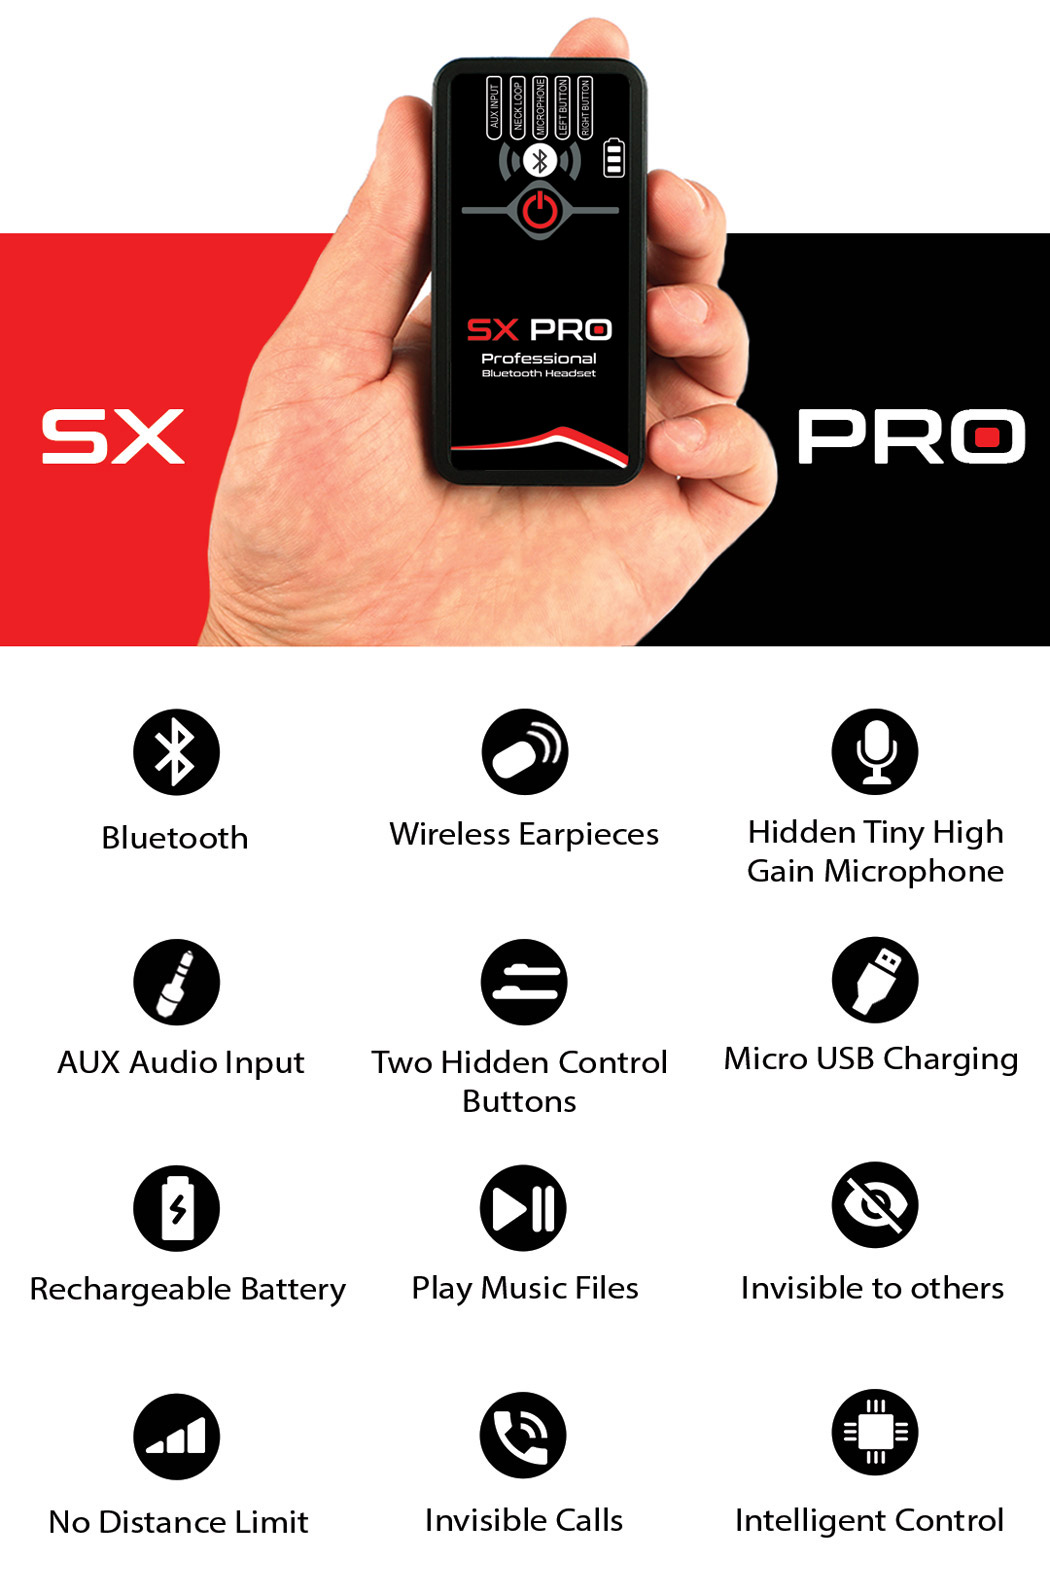 SX PRO offers Bluetooth Connection, Wireless Earpieces, a Tiny High-Gain Microphone, Hidden Control Buttons allowing to Place Invisible Unnoticeable Calls, Play Audio Recordings Music, AUX Input and much more.